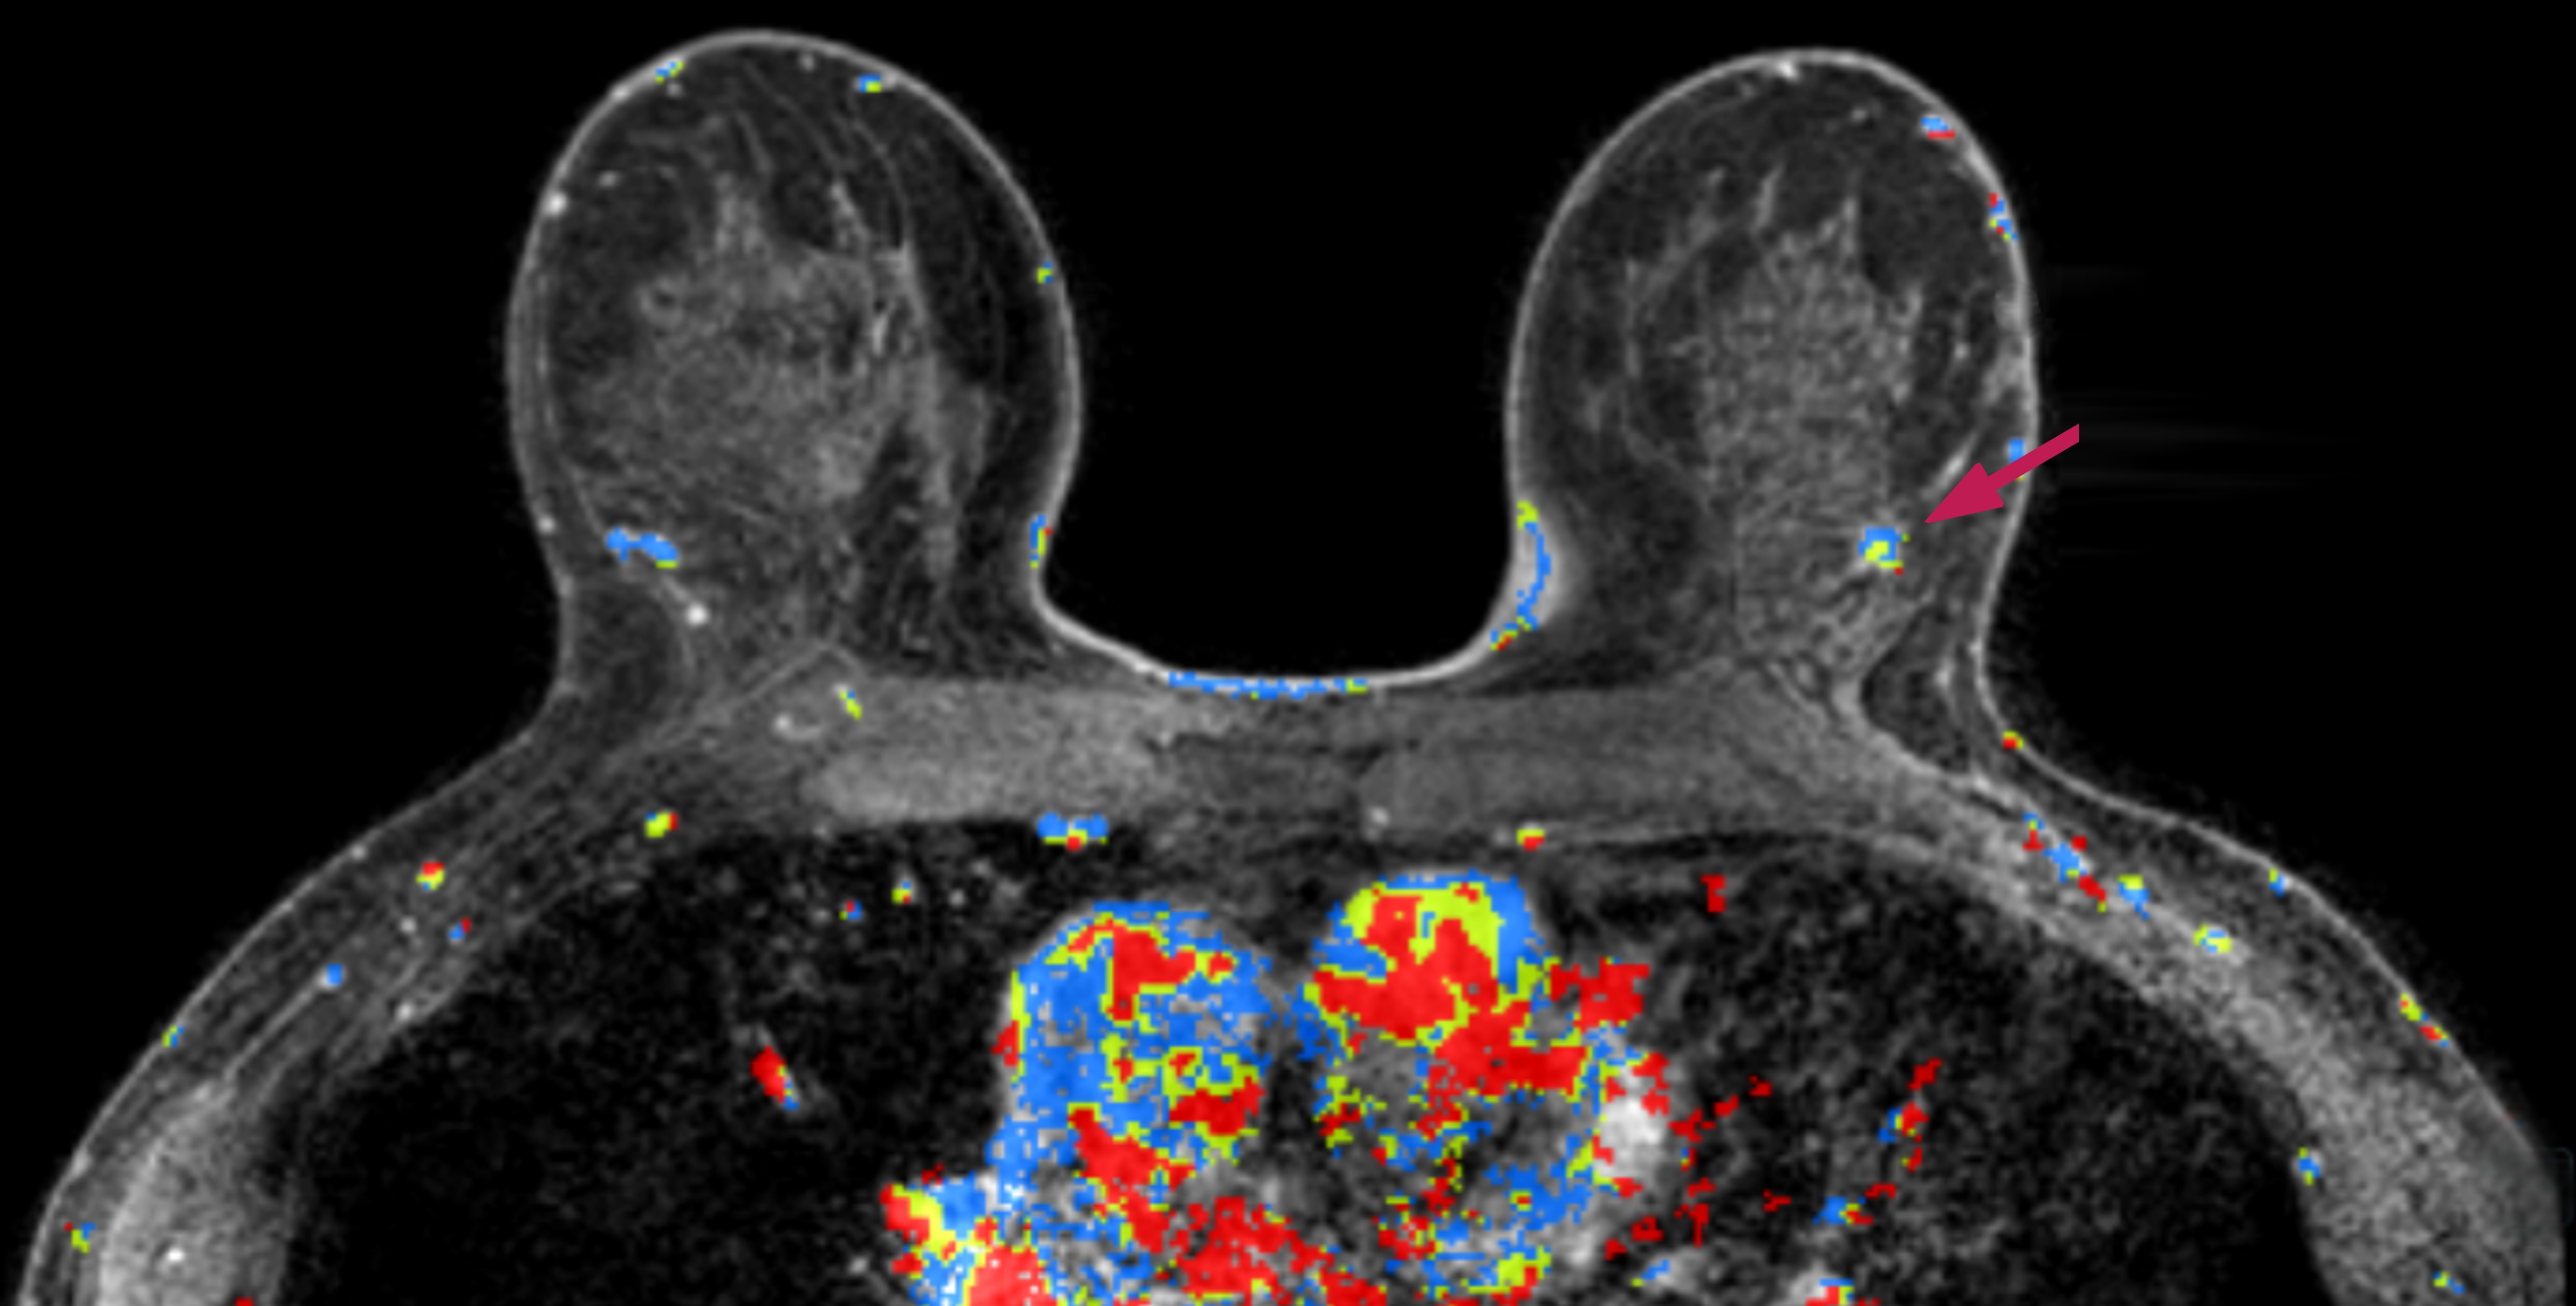 An MRI screening with a possible breast abnormality in the left breast